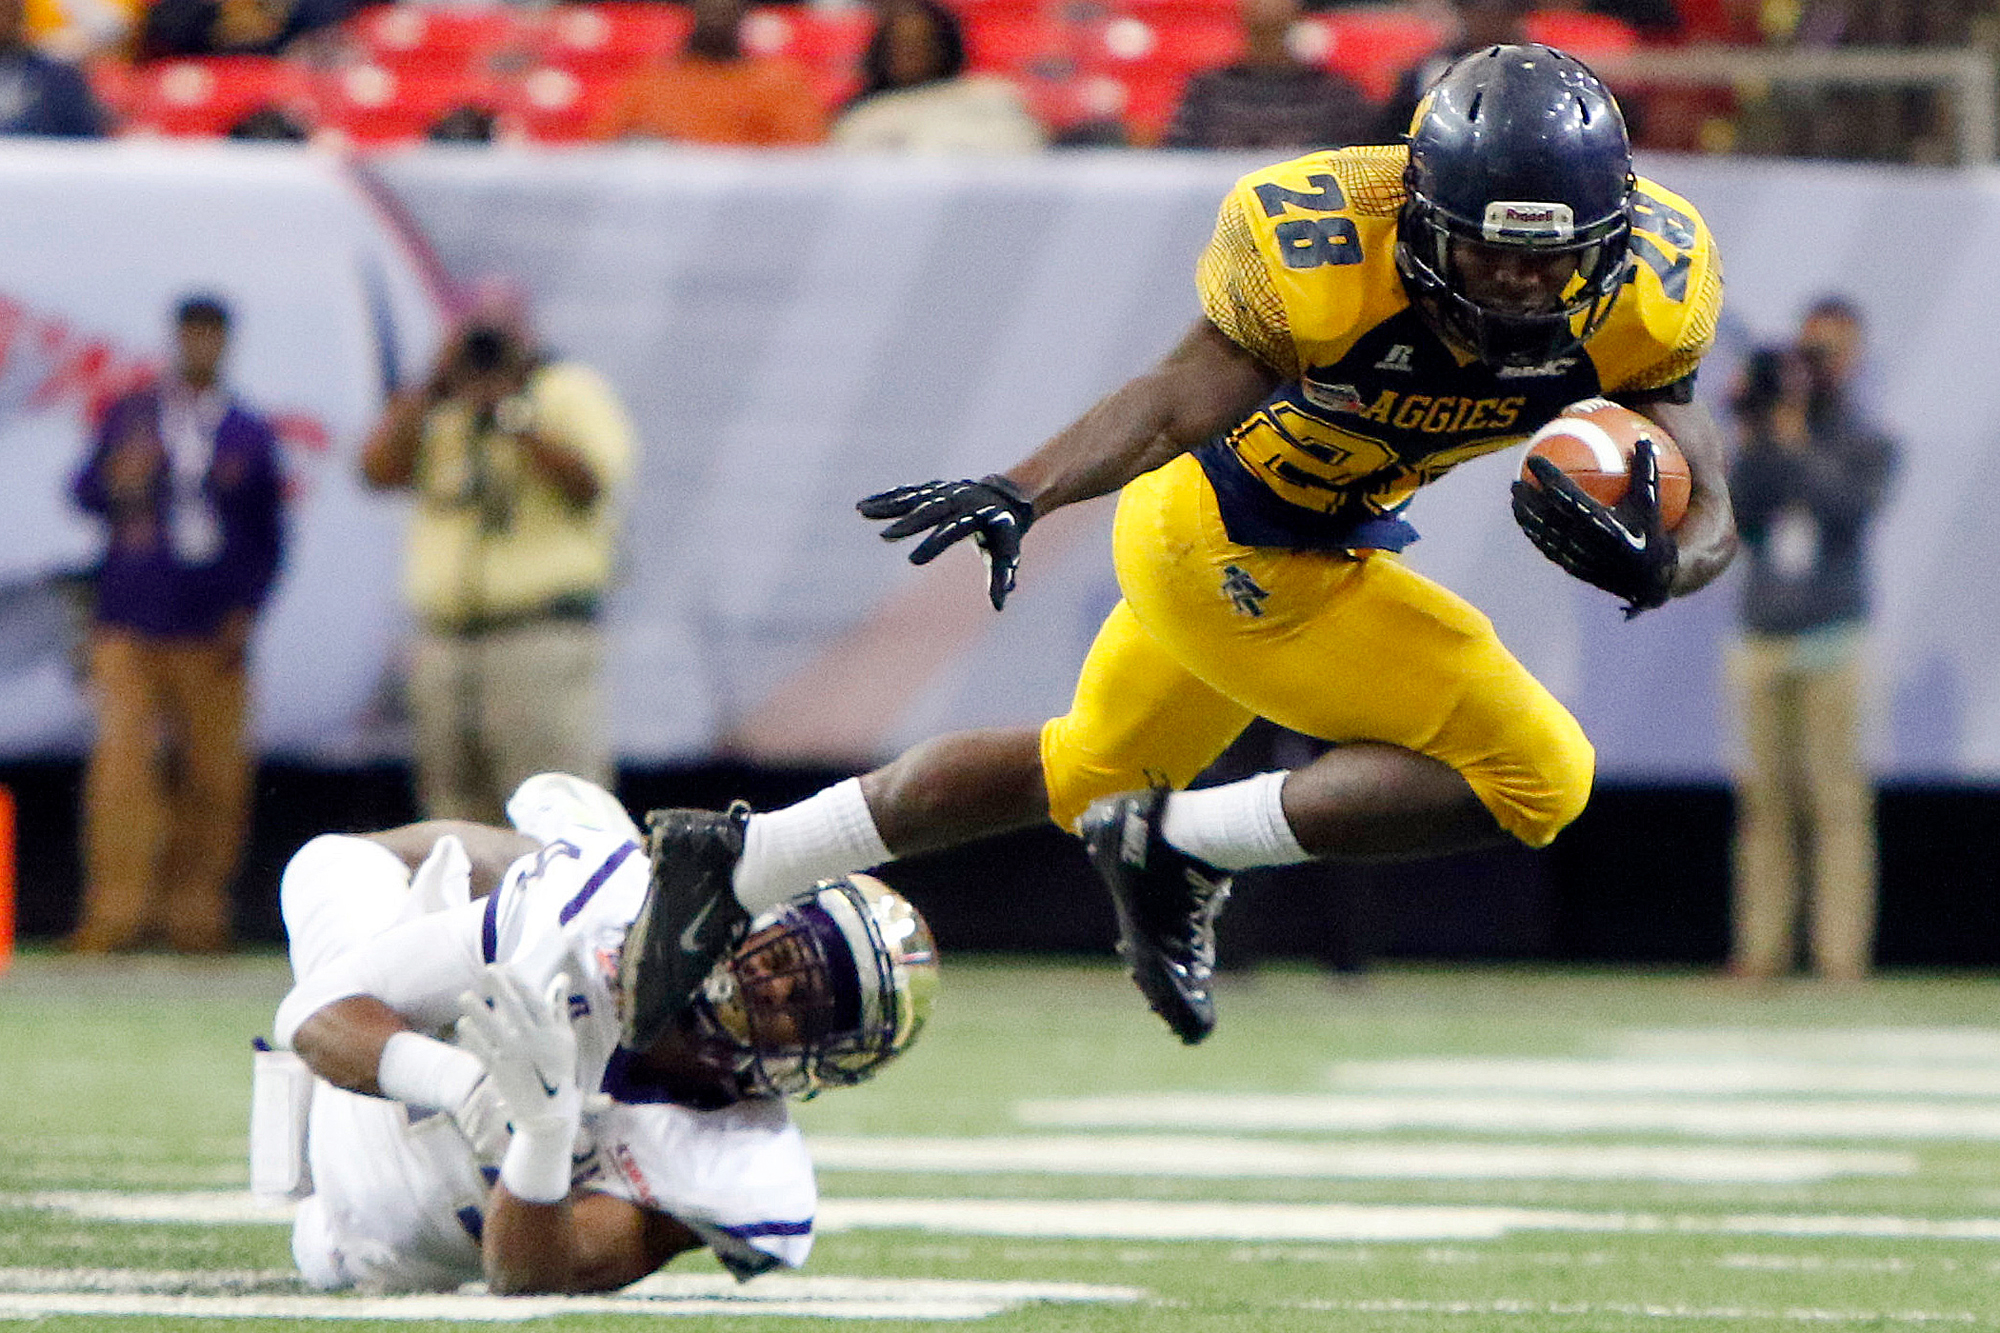 North Carolina A&T Aggies running back Tarik Cohen (28) is tackled by Alcorn State Braves defensive back Warren Gatewood (24) in the second quarter of the 2015 Celebration Bowl at the Georgia Dome.